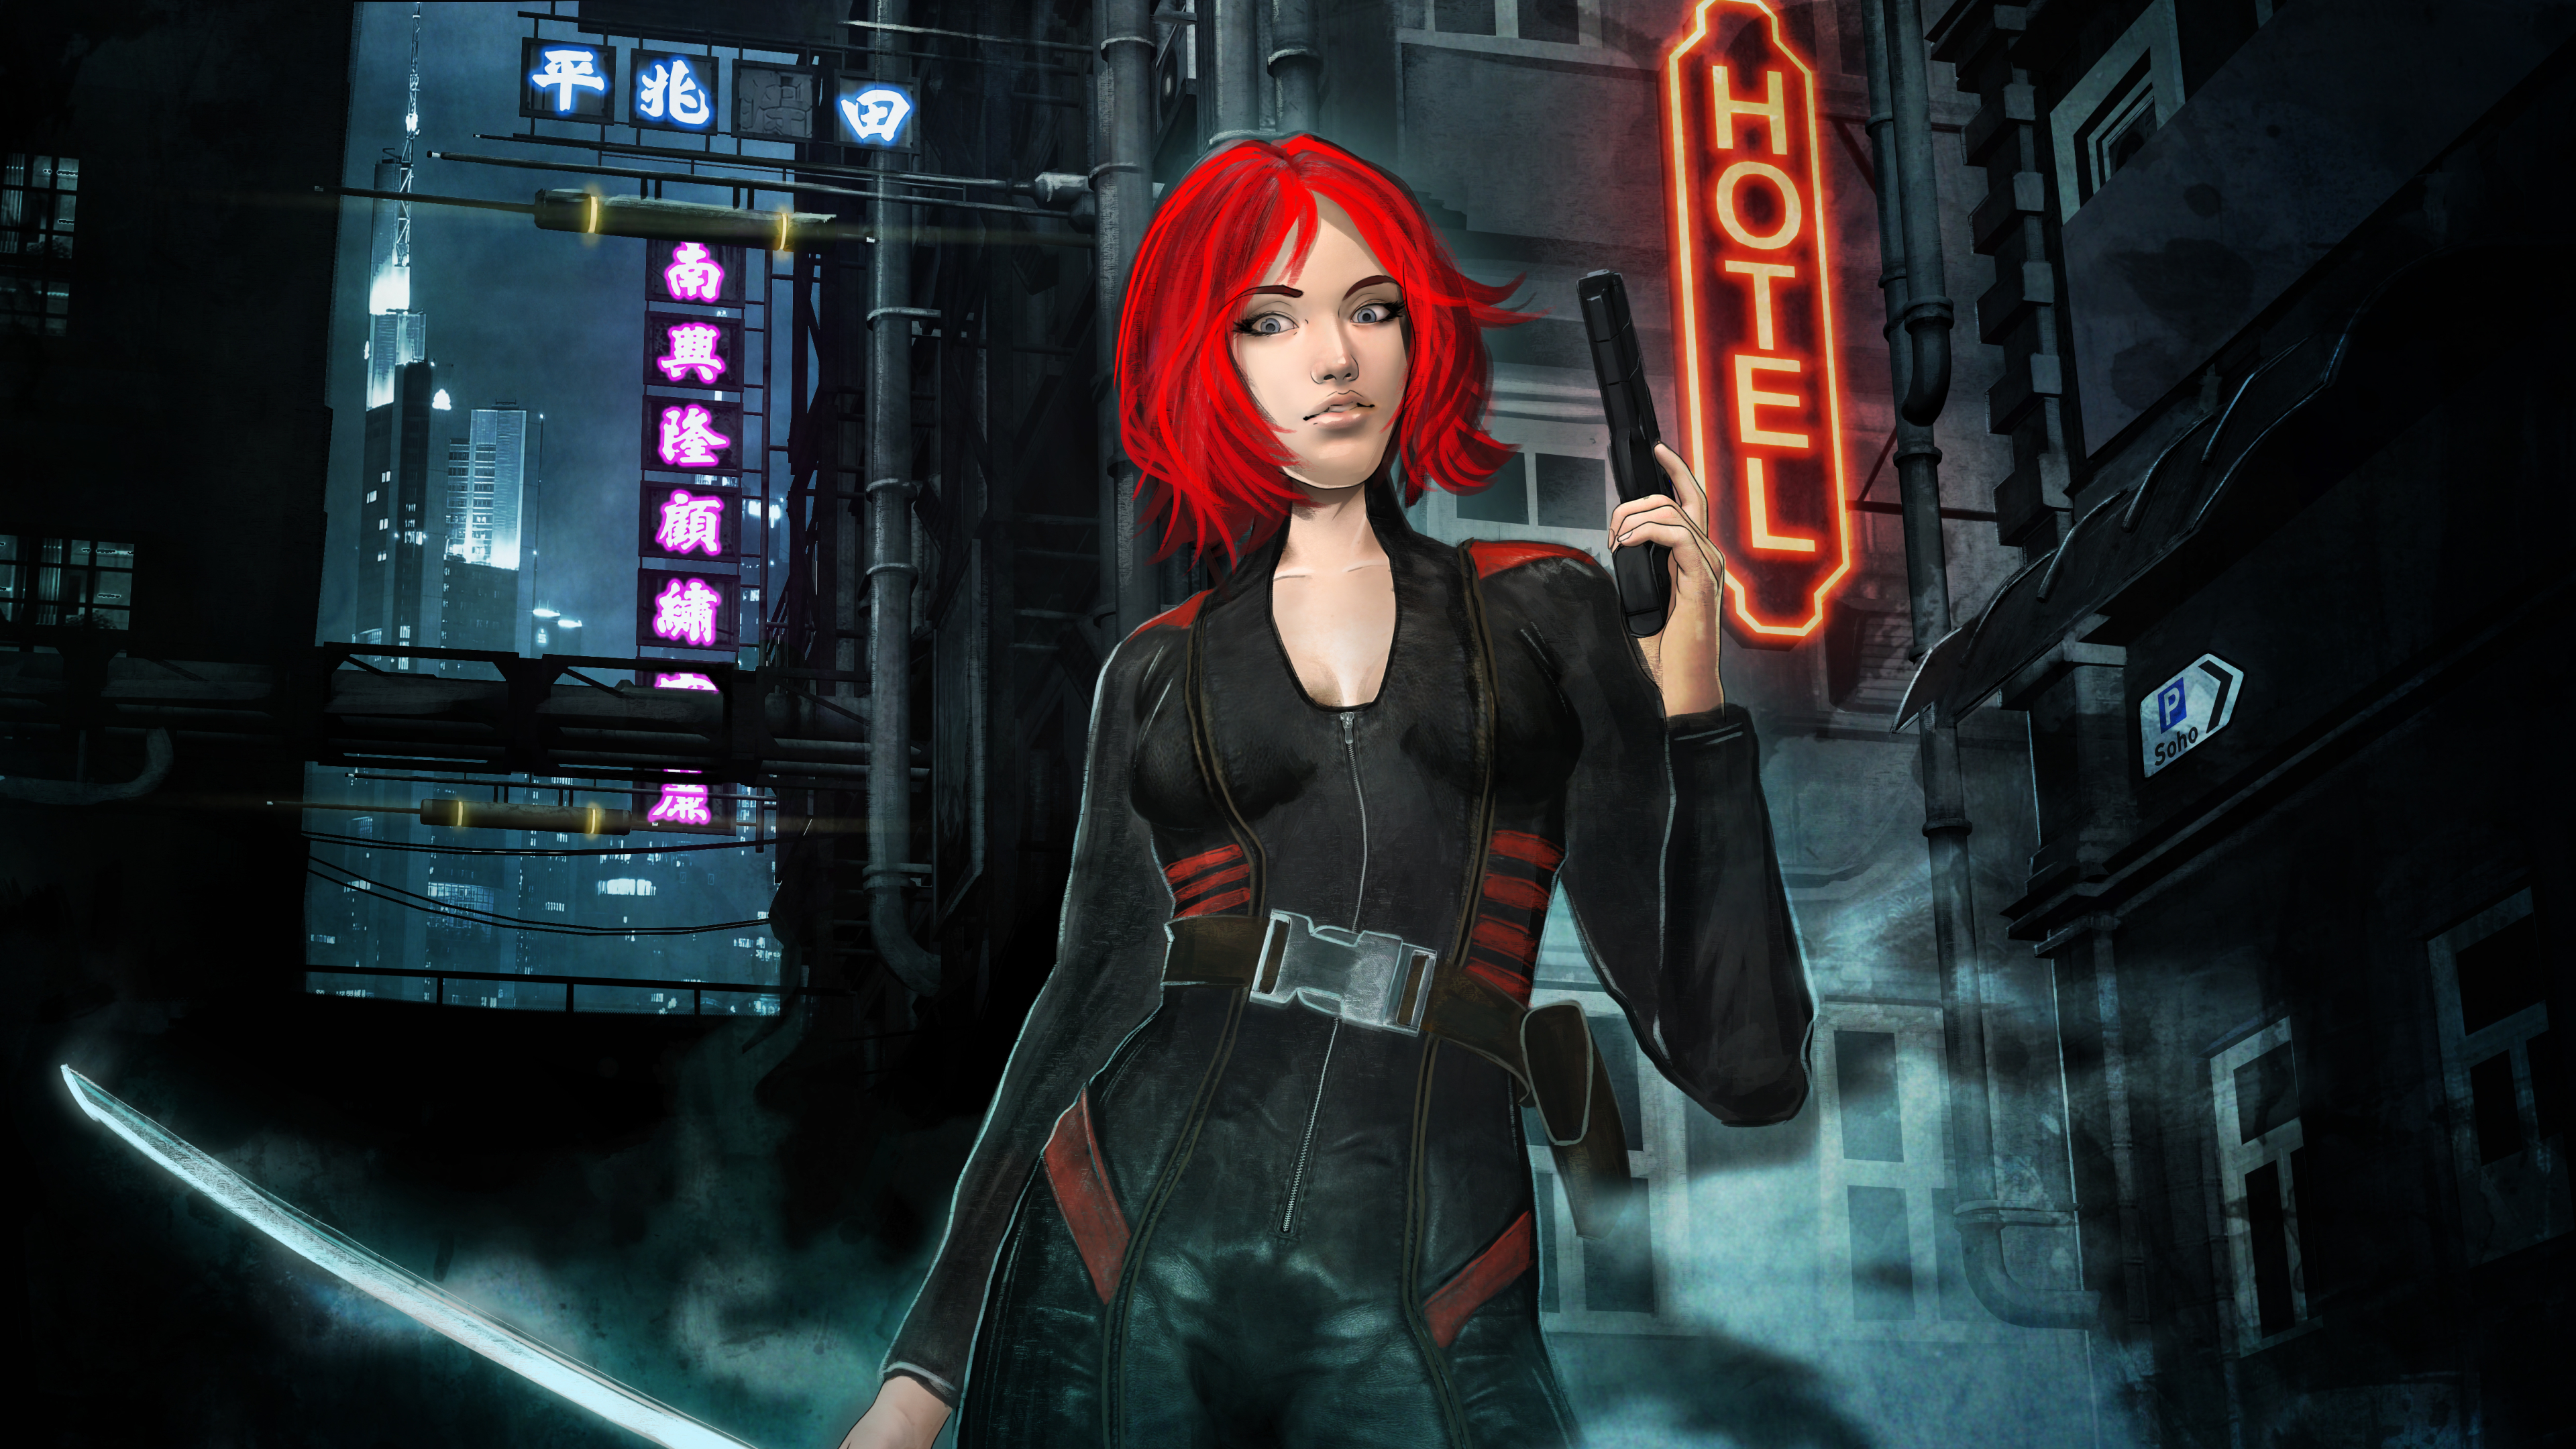 3840x2160 Red Hair Cyberpunk Girl 4k Wallpaper Hd Artist 4k Wallpapers Images Photos And Background